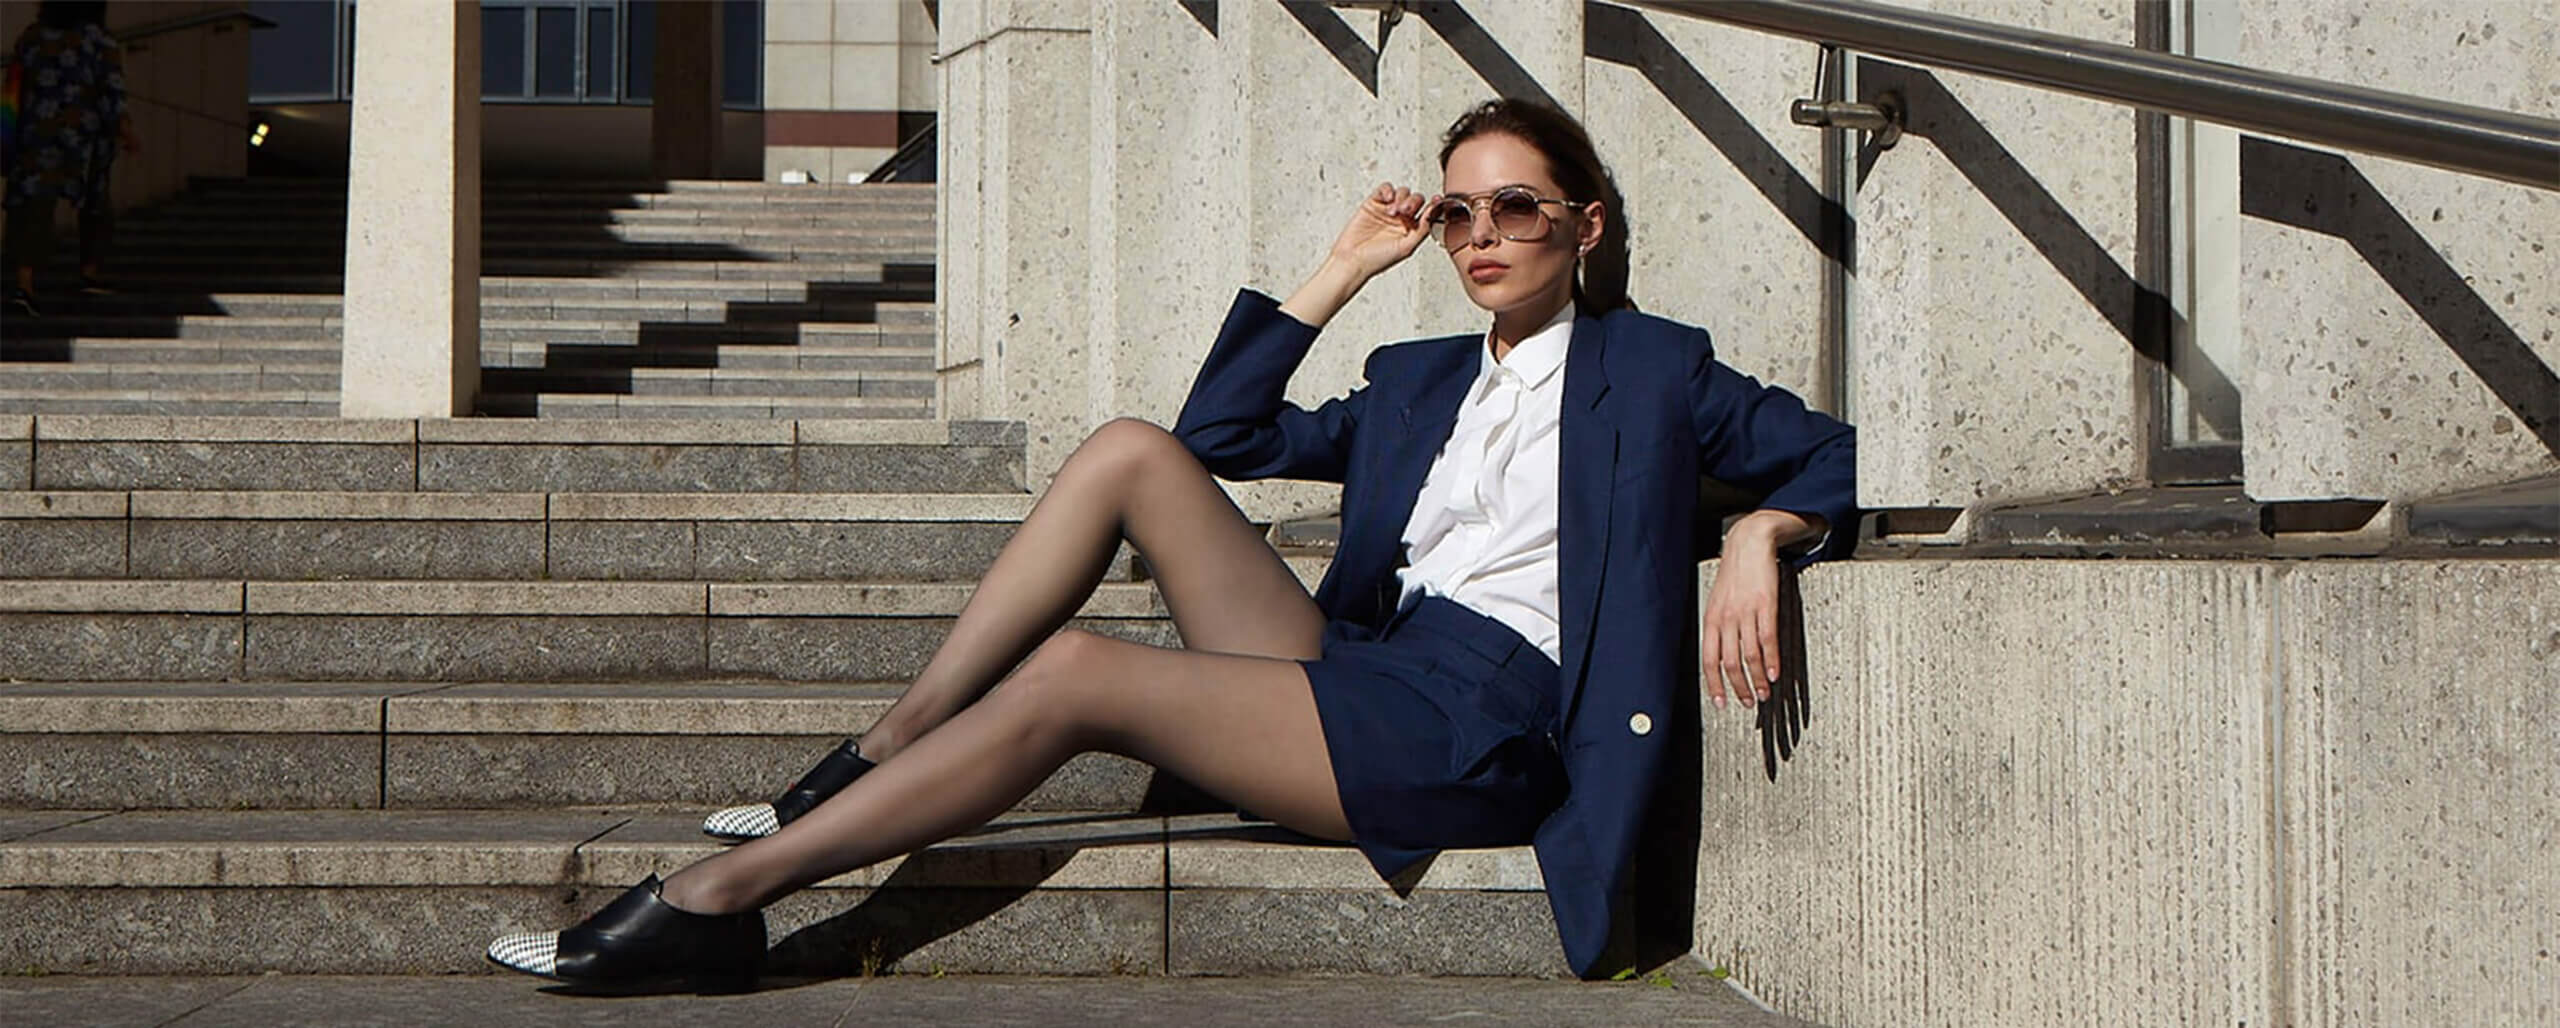 Mastra Ma' black oxford shoe for women featuring memory foam and red heart- smart lady sitting on stairs with sunglasses- desktop